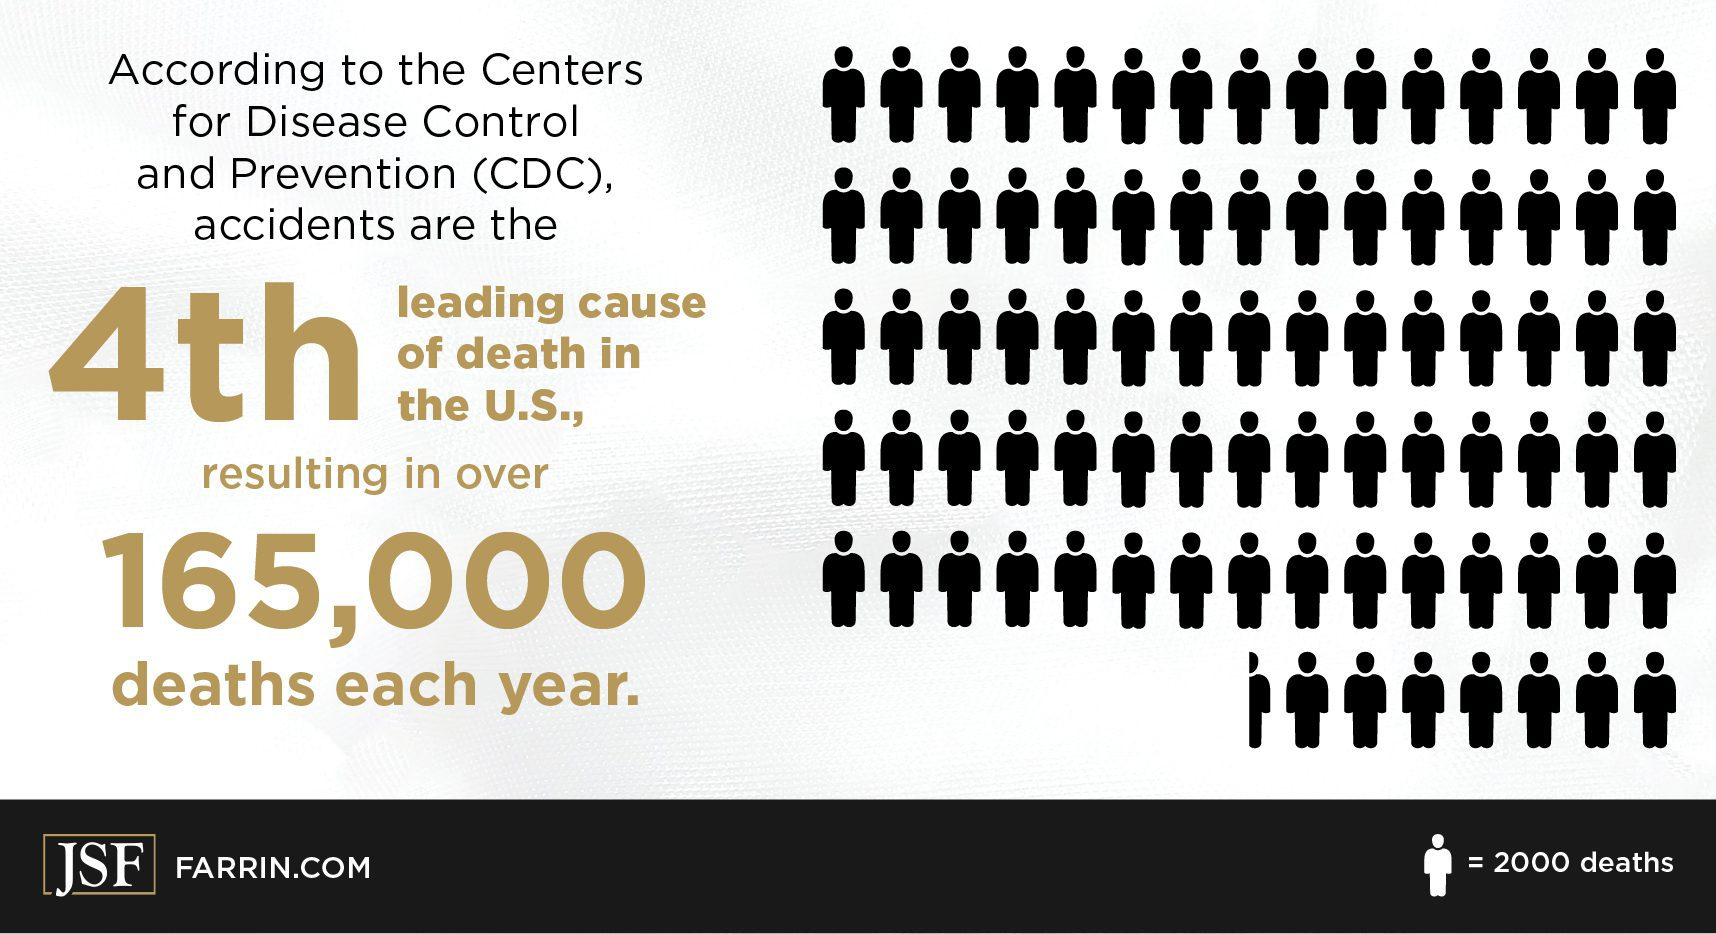 Unintentional injuries account for 165,000 deaths in the US each year, according to the CDC.